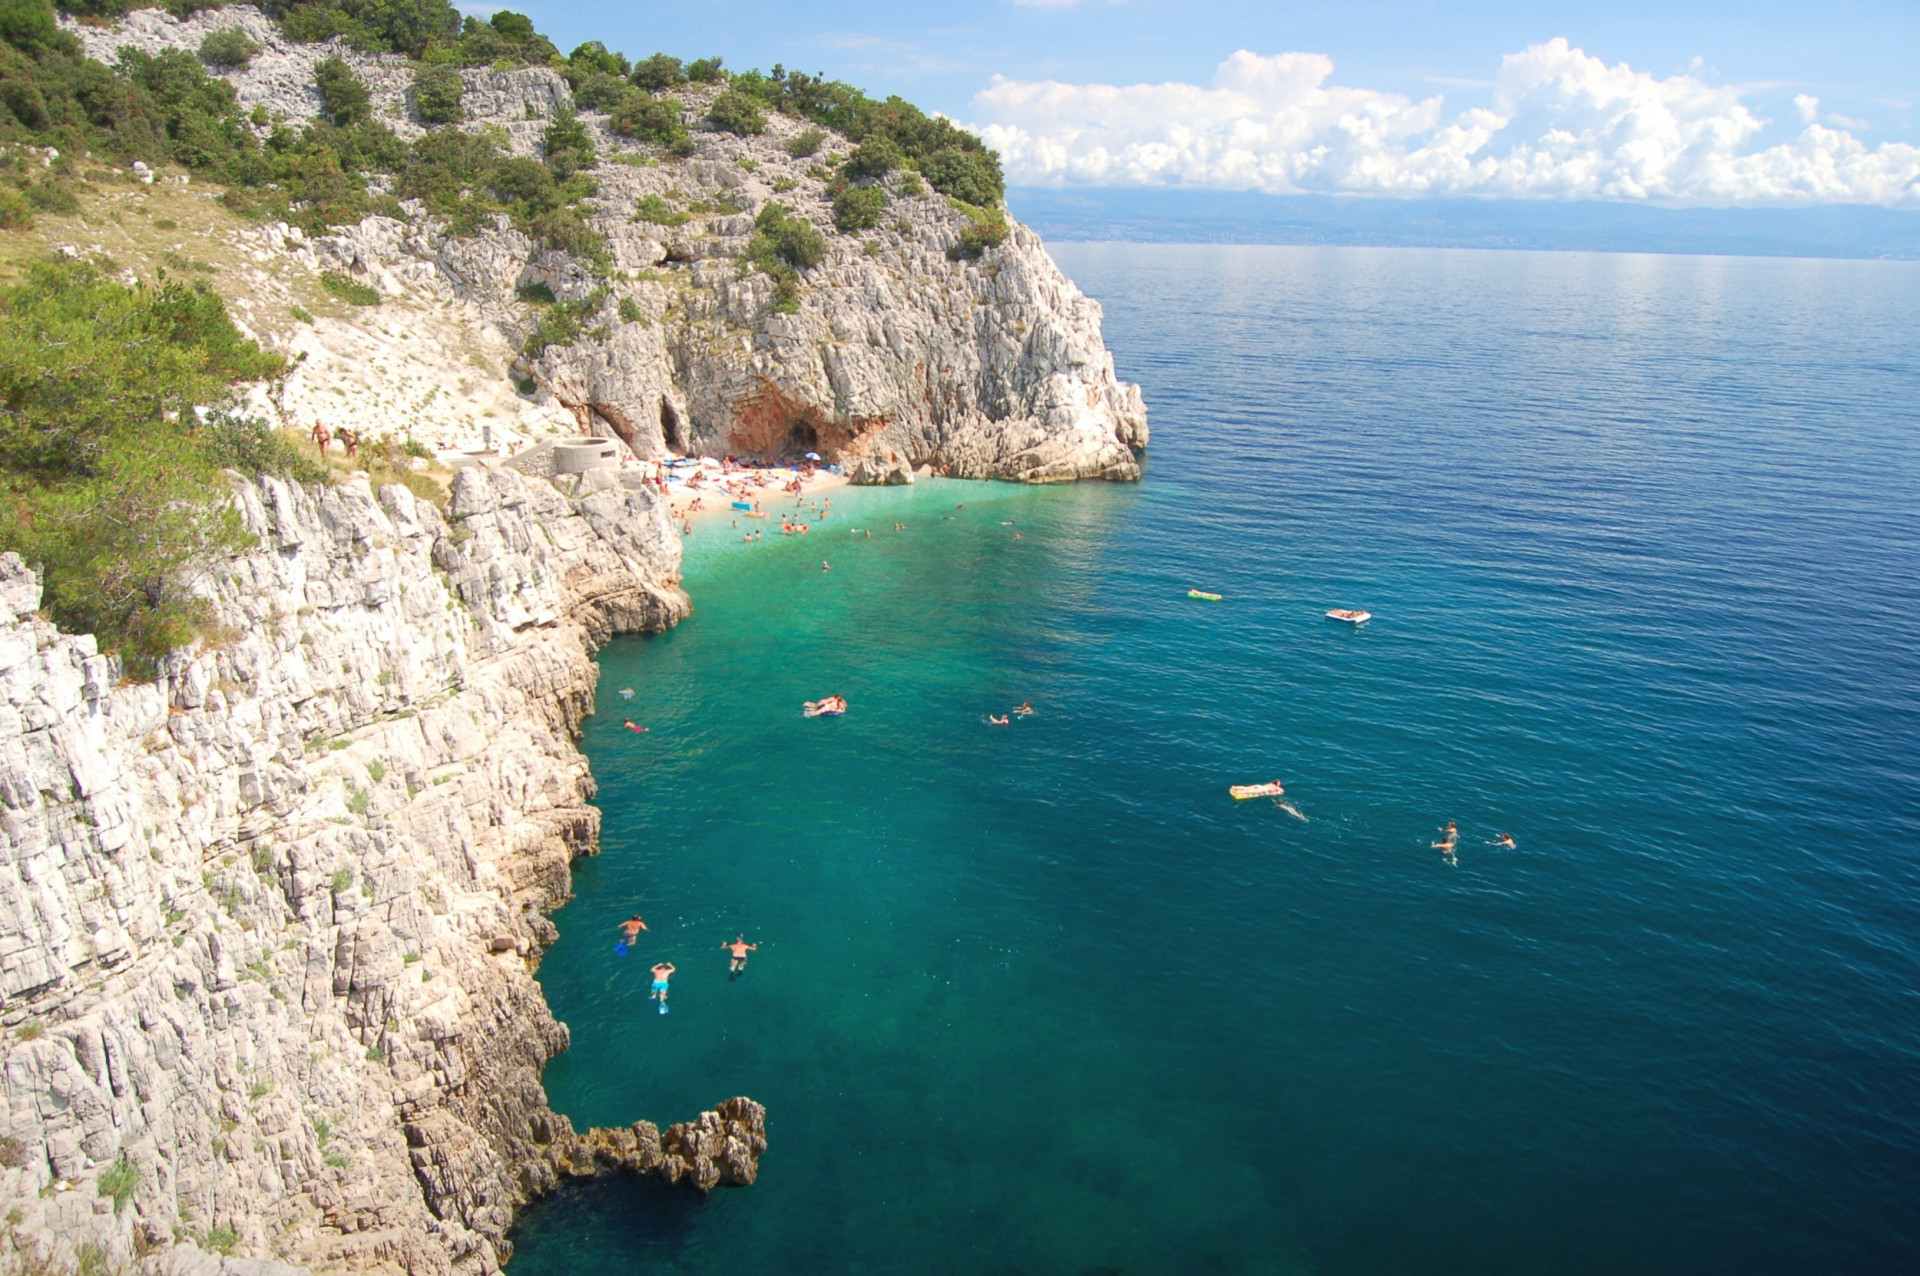 Discover your perfect stay, Vacation villas, apartments and hotels in Croatia - Charming Croatia